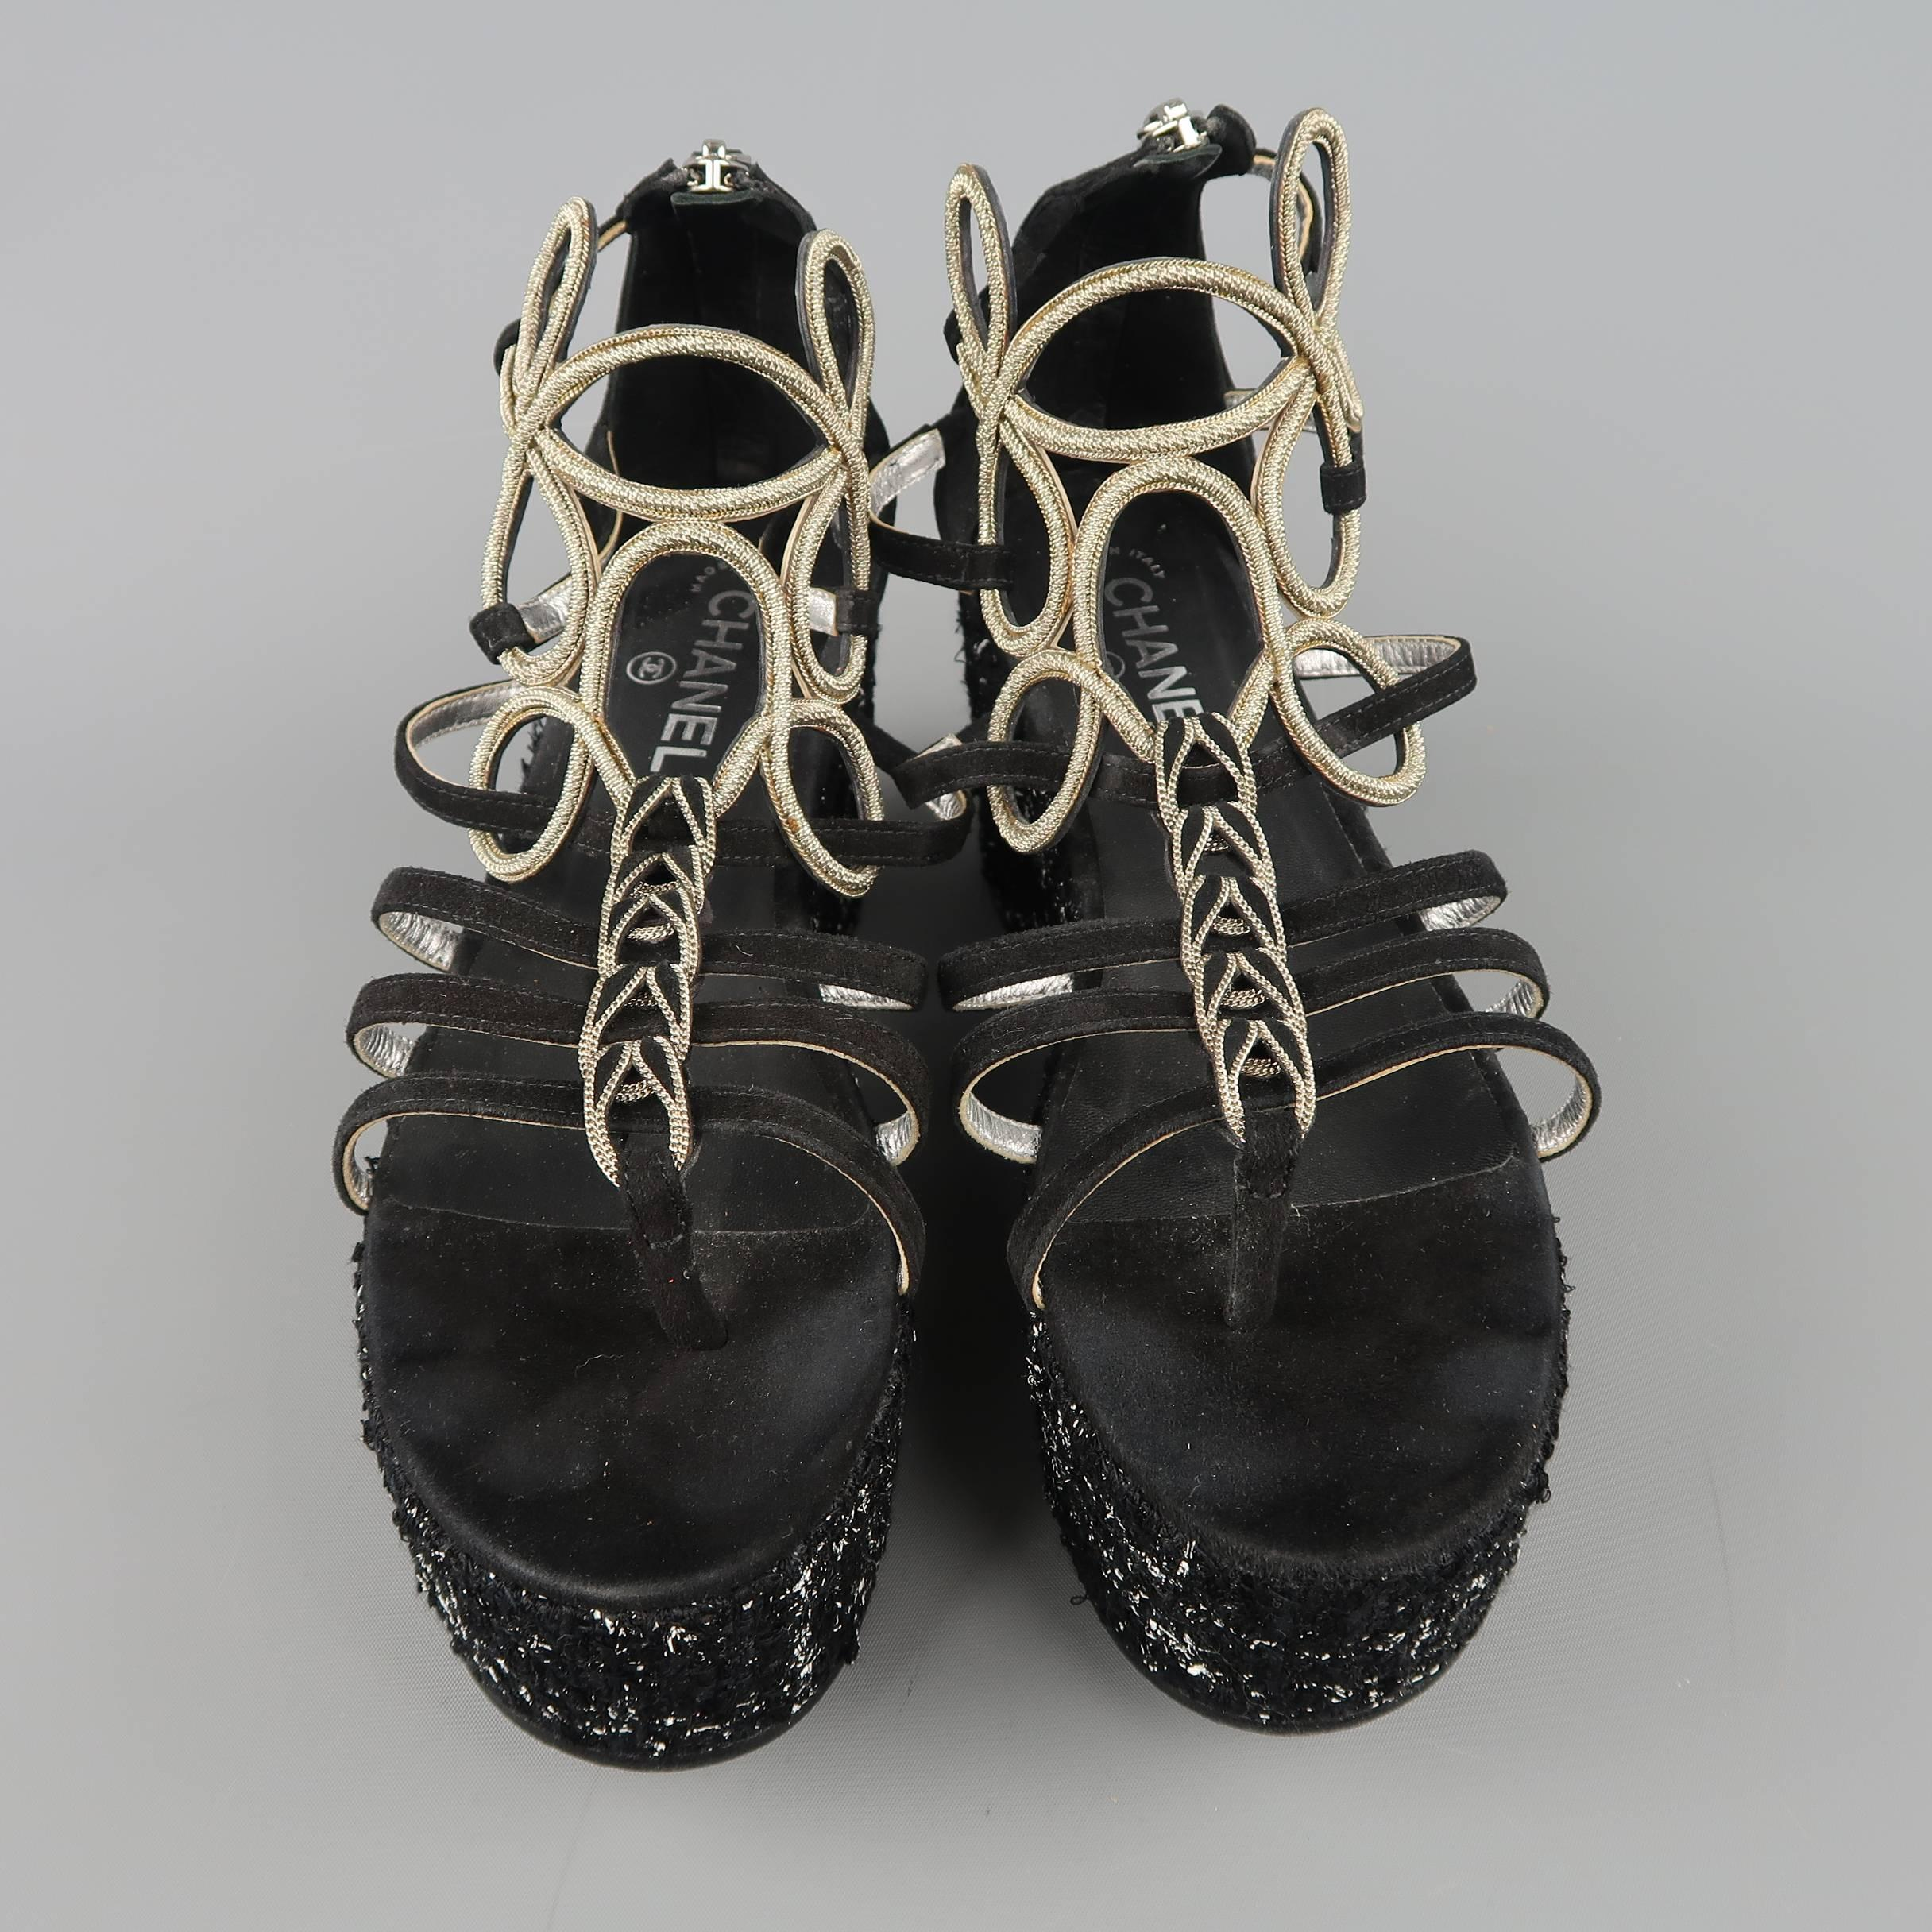 a6d66b9f83e Chanel Size 10 Black Suede and Metal Gladiator Platform Wedge Pump Sandals  at 1stdibs